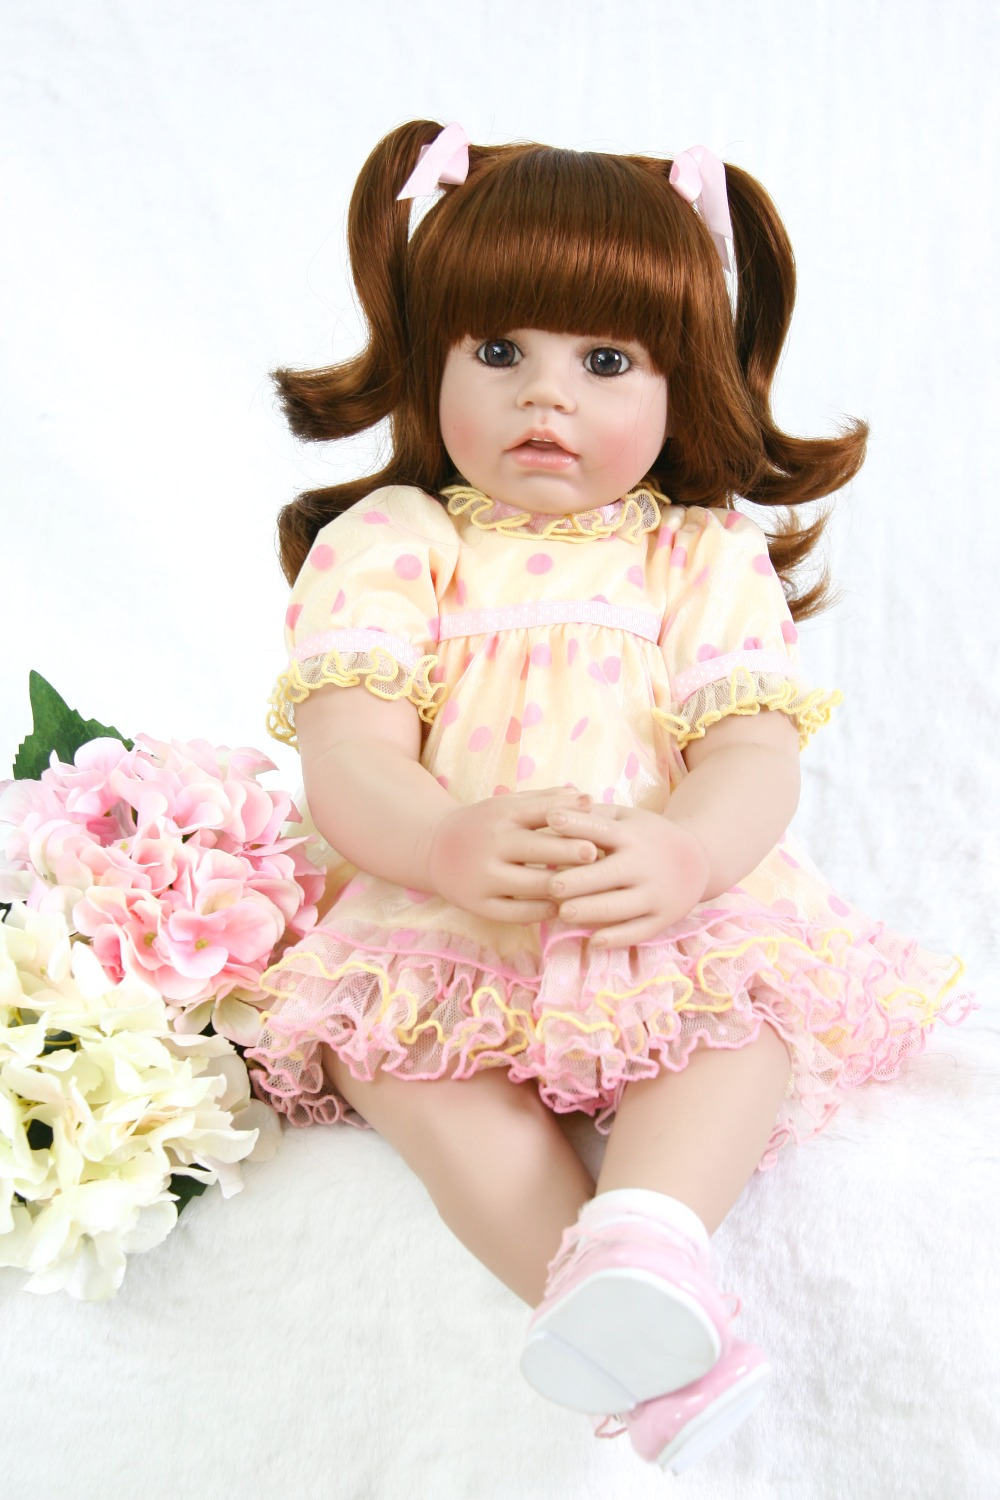 24 Silicone Reborn Baby Doll Toys Like Real Vinyl handmade lovely Princess Toddler Babies Dolls Girls Bonecas toys 24 Silicone Reborn Baby Doll Toys Like Real Vinyl handmade lovely Princess Toddler Babies Dolls Girls Bonecas toys